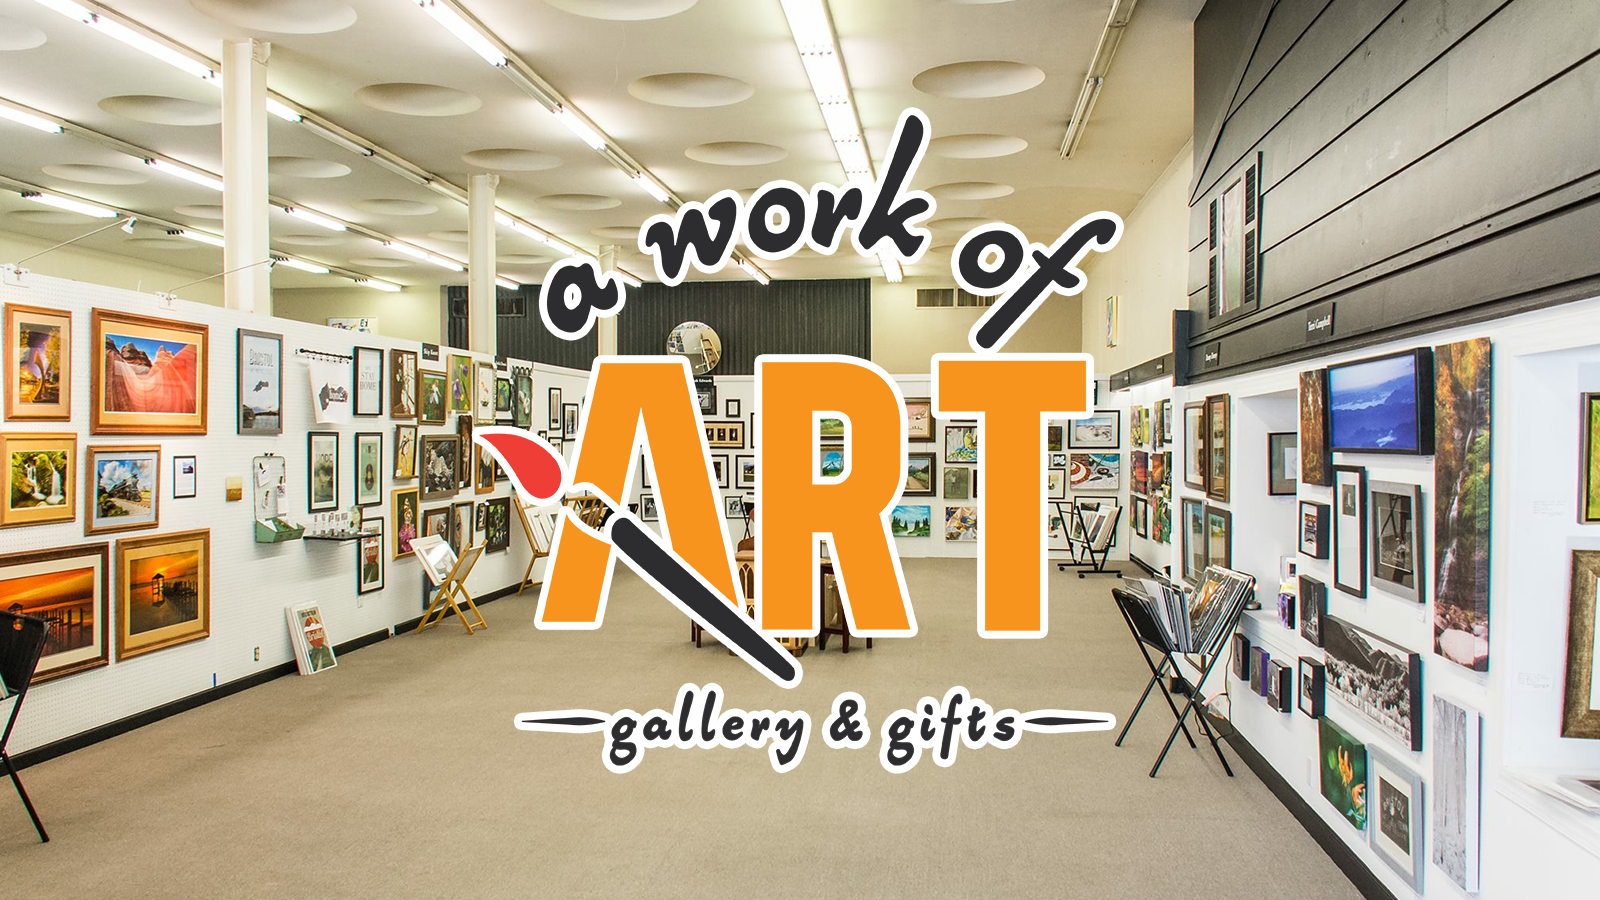 Grand Re Opening Celebration At A Work Of Art Gallery Gifts Downtown Bristol Events